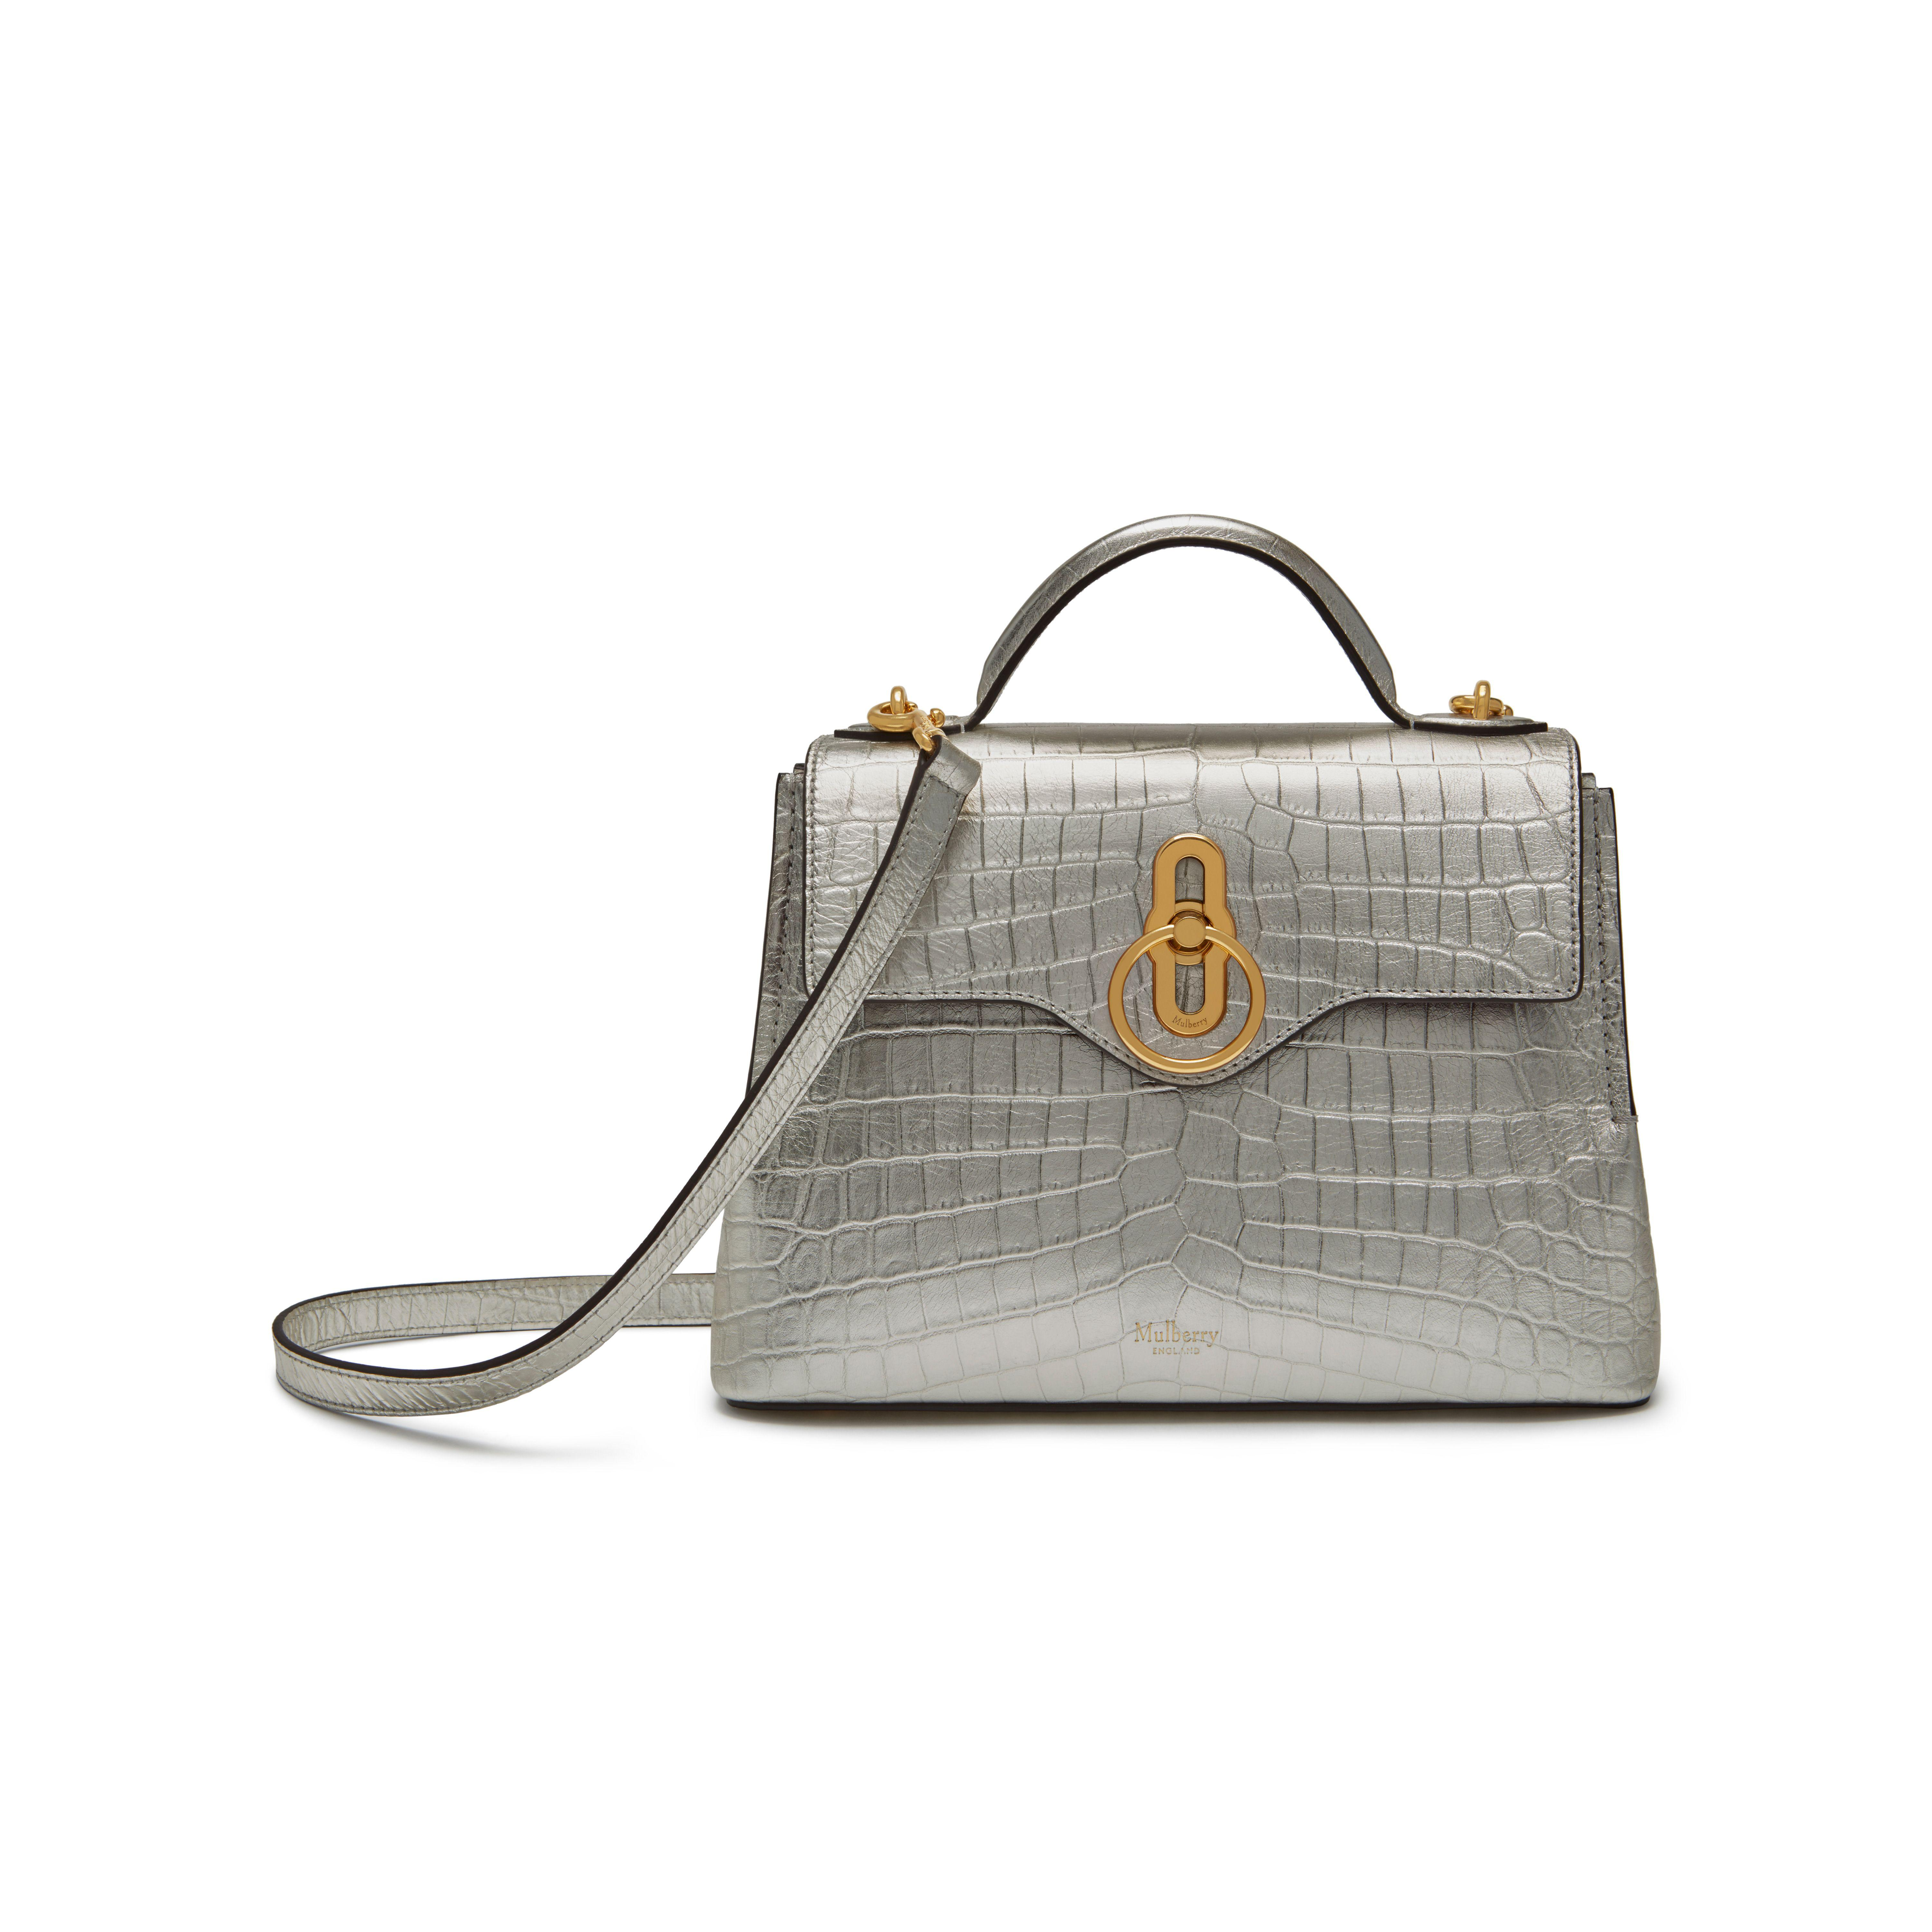 Mulberry Mini Seaton in Metallic - Lyst 86ffff68b6258